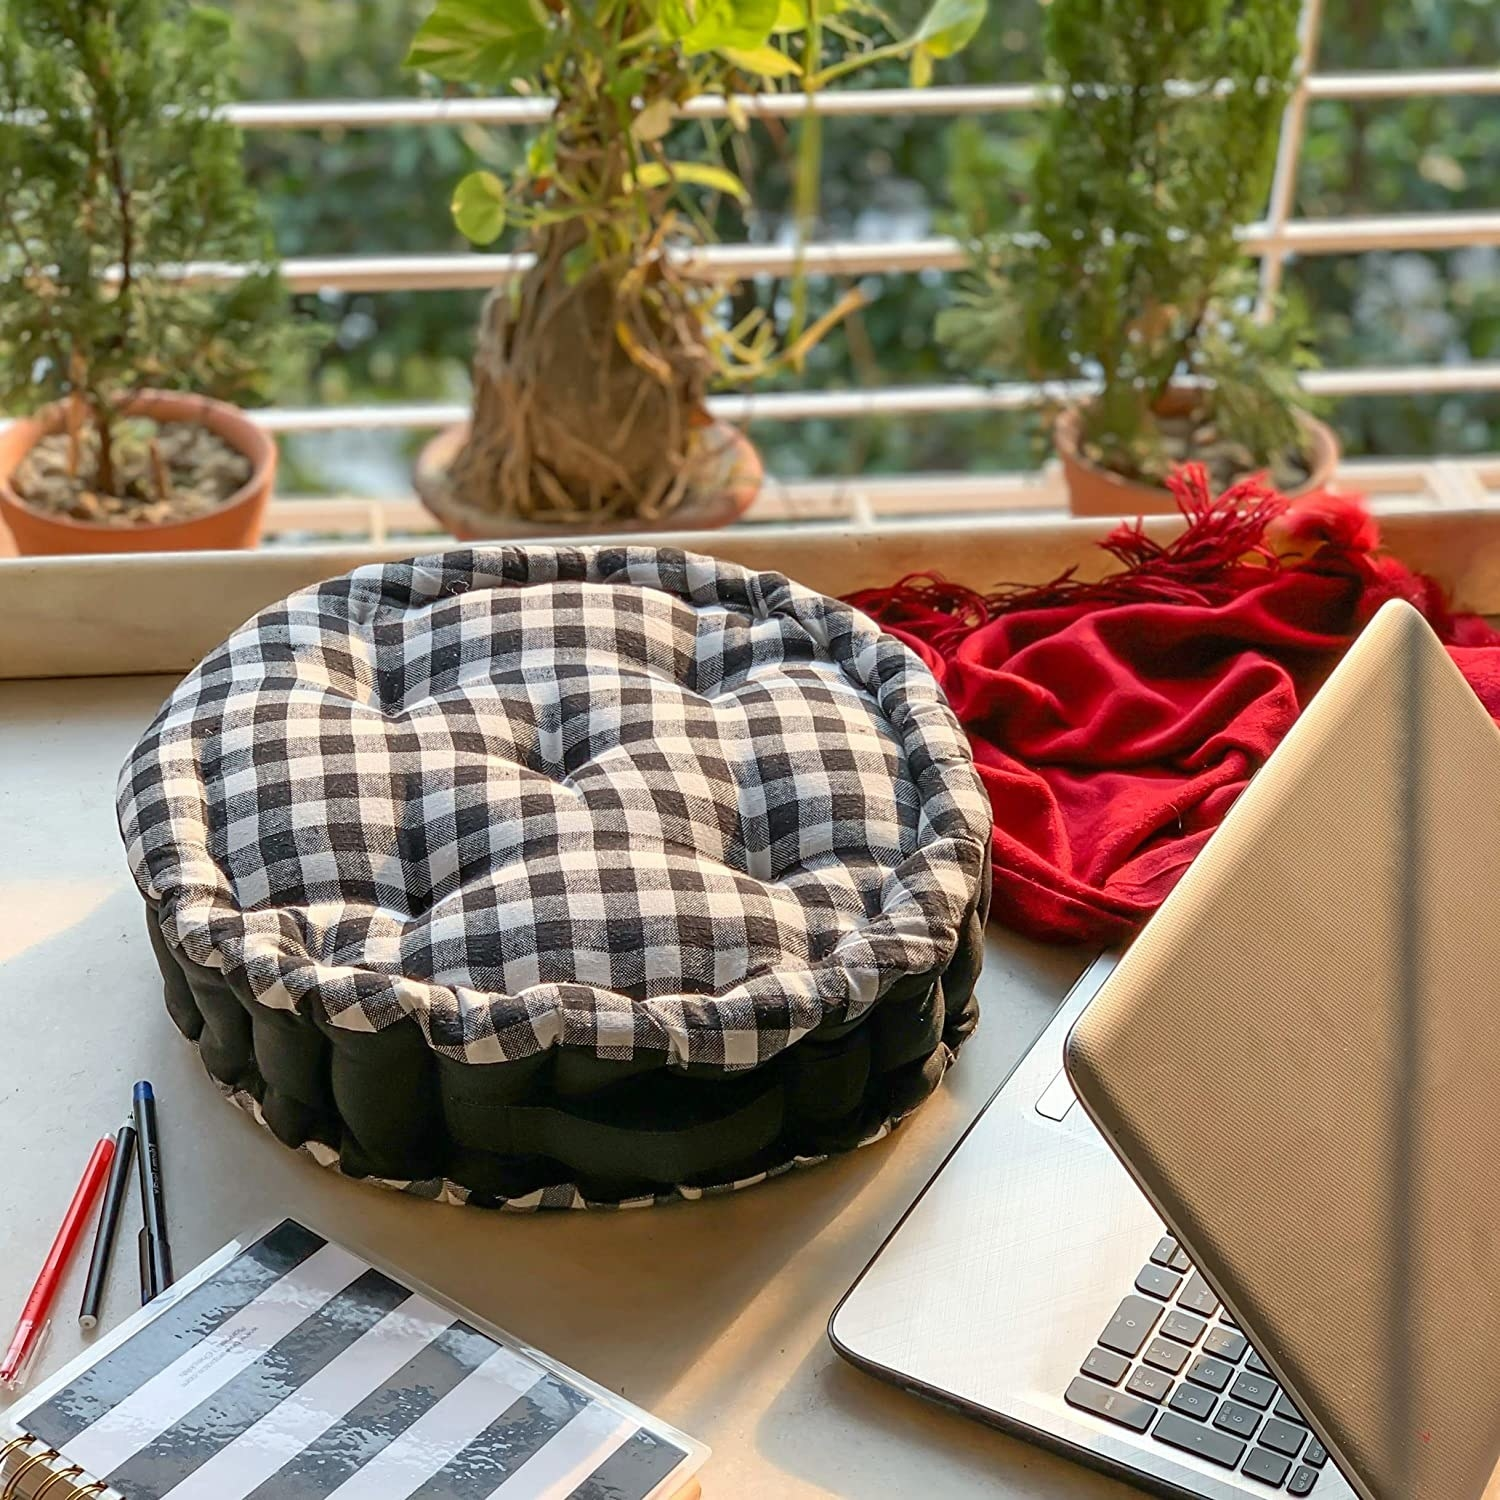 A checkered black and white round floor cushion kept on a balcony next to a laptop and notebook